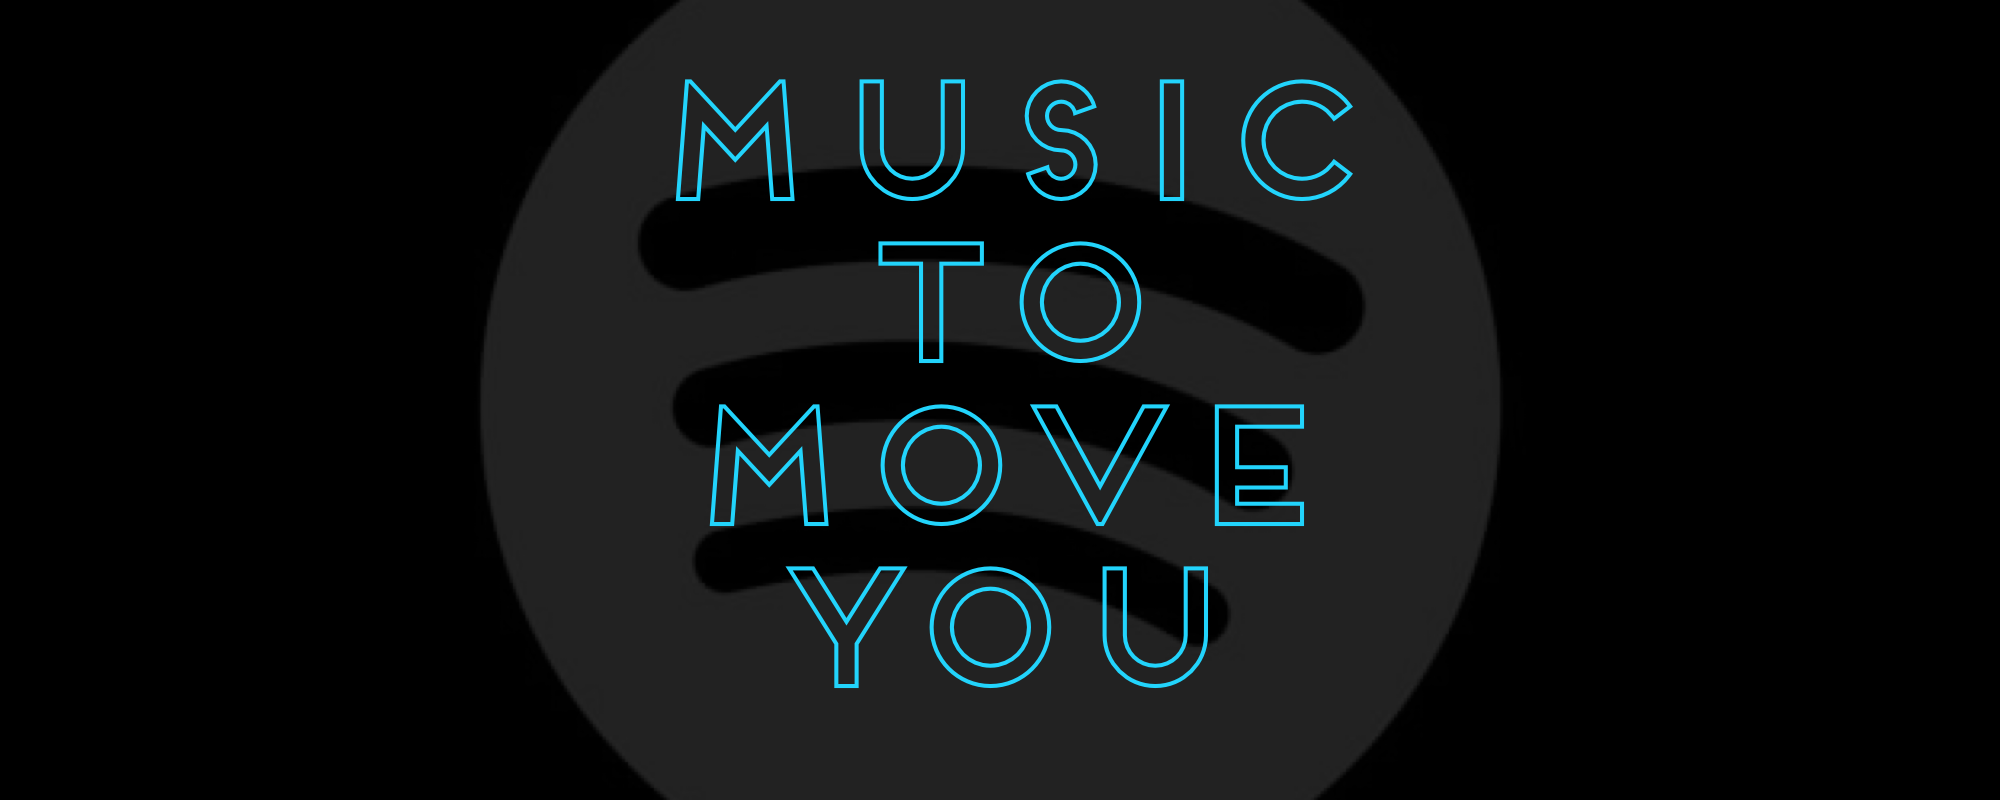 Discover New Music / Playlists Submitted By You